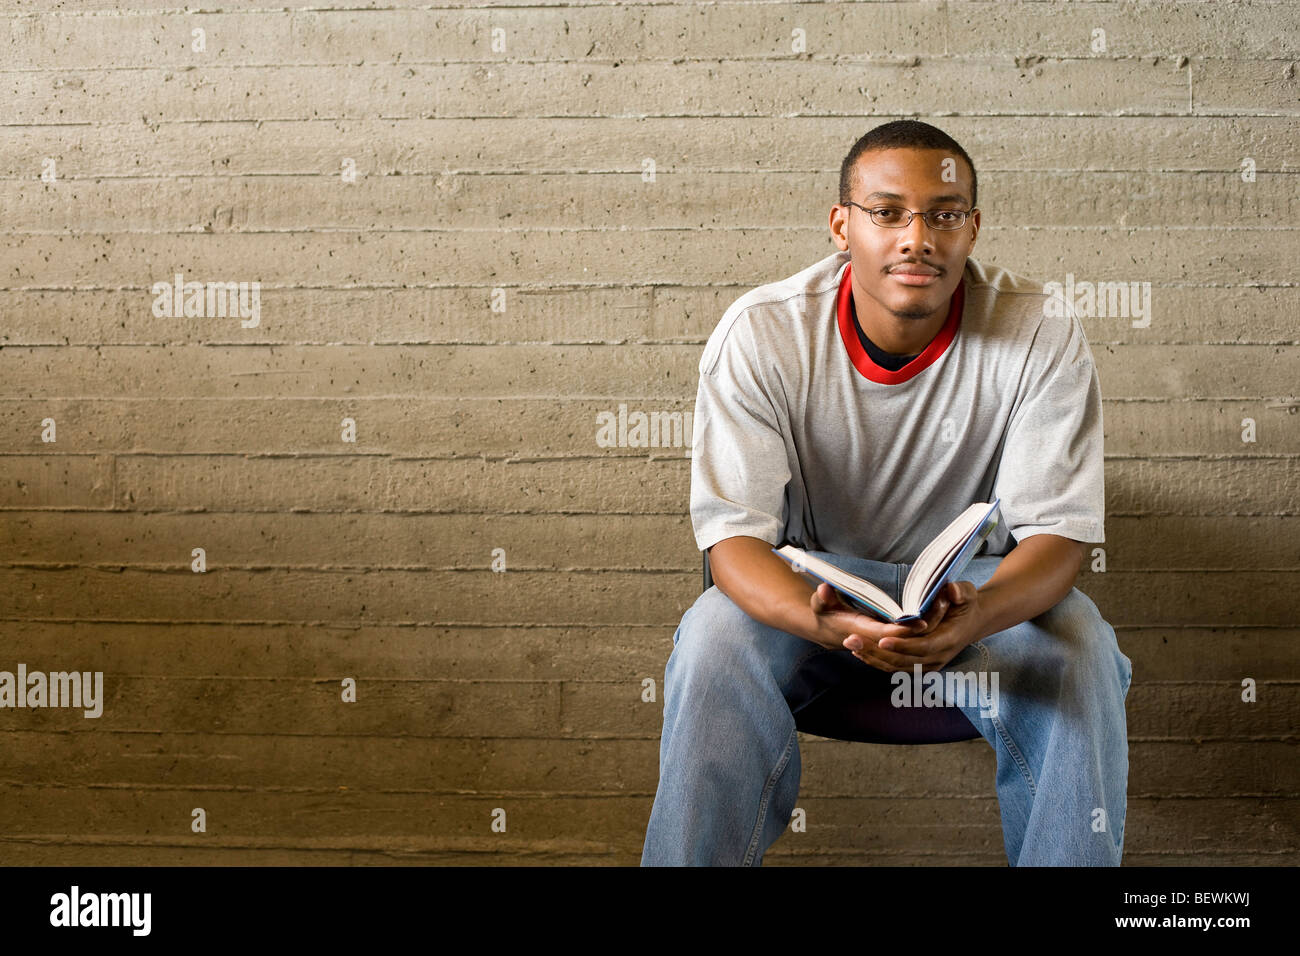 Young man reads and studies in a library - Stock Image